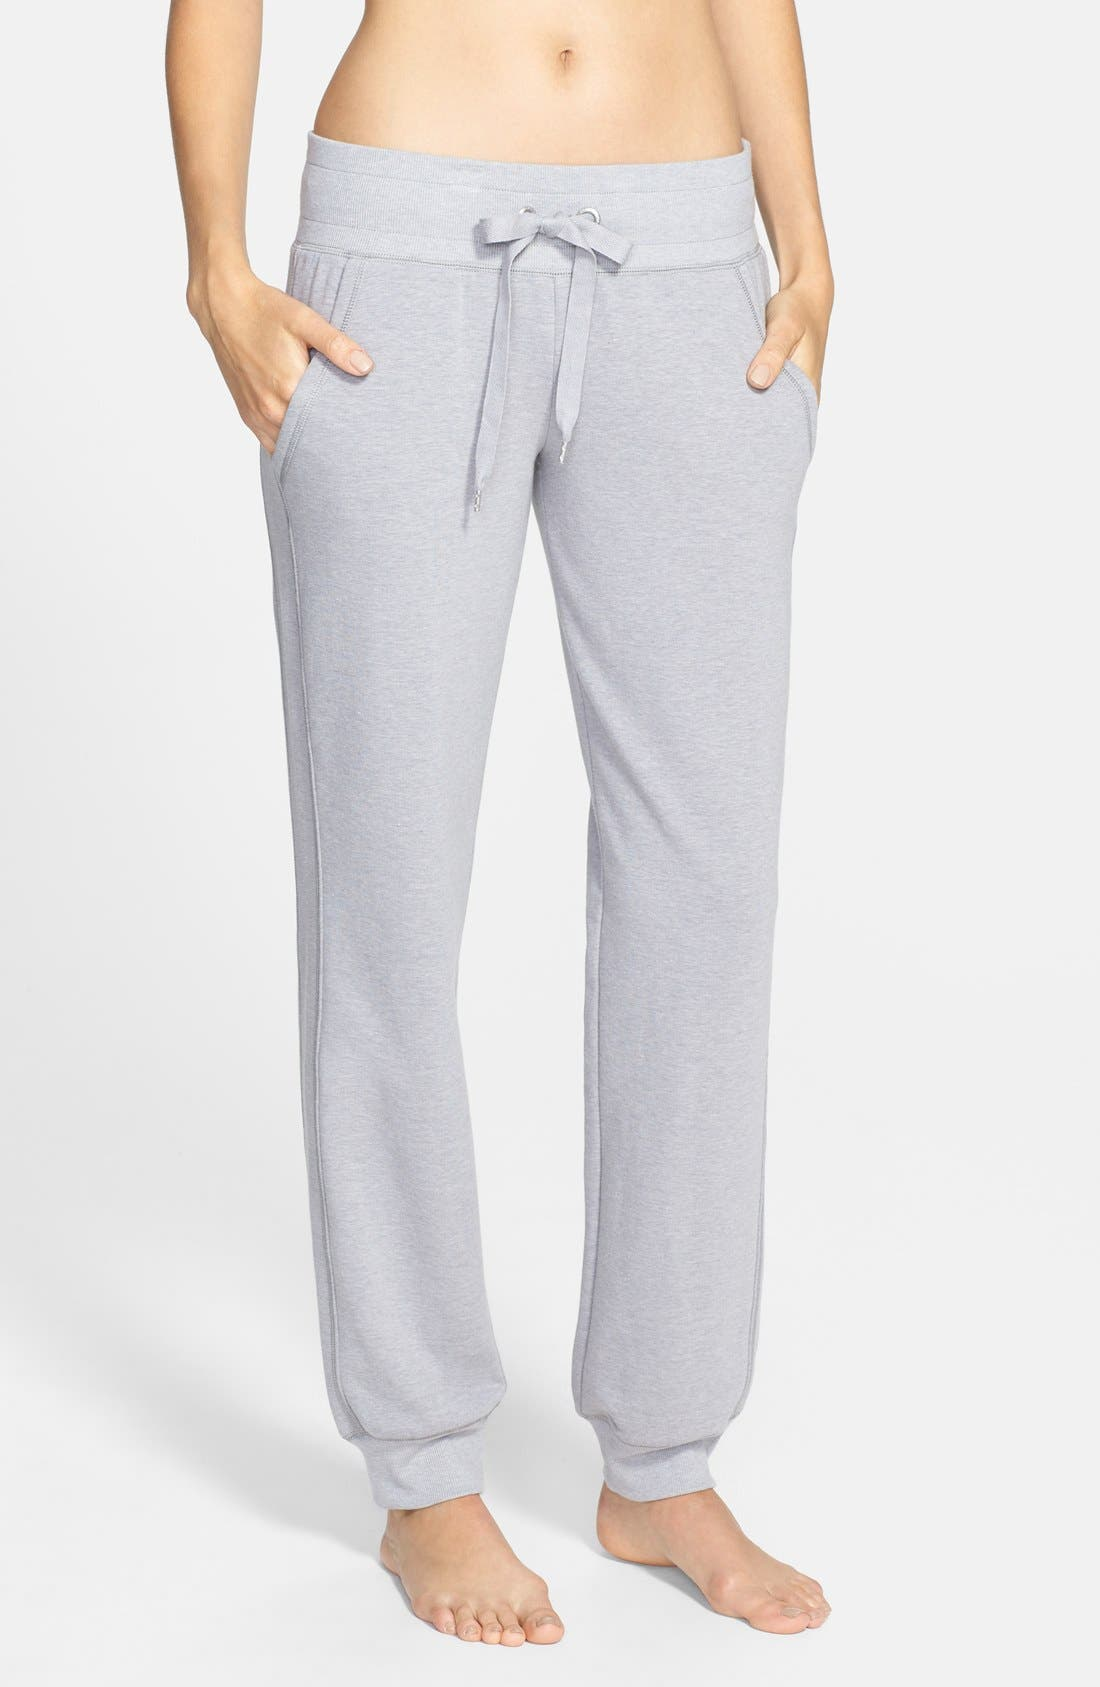 Main Image - Zella Low Rise Skinny Fleece Sweatpants (Online Only)